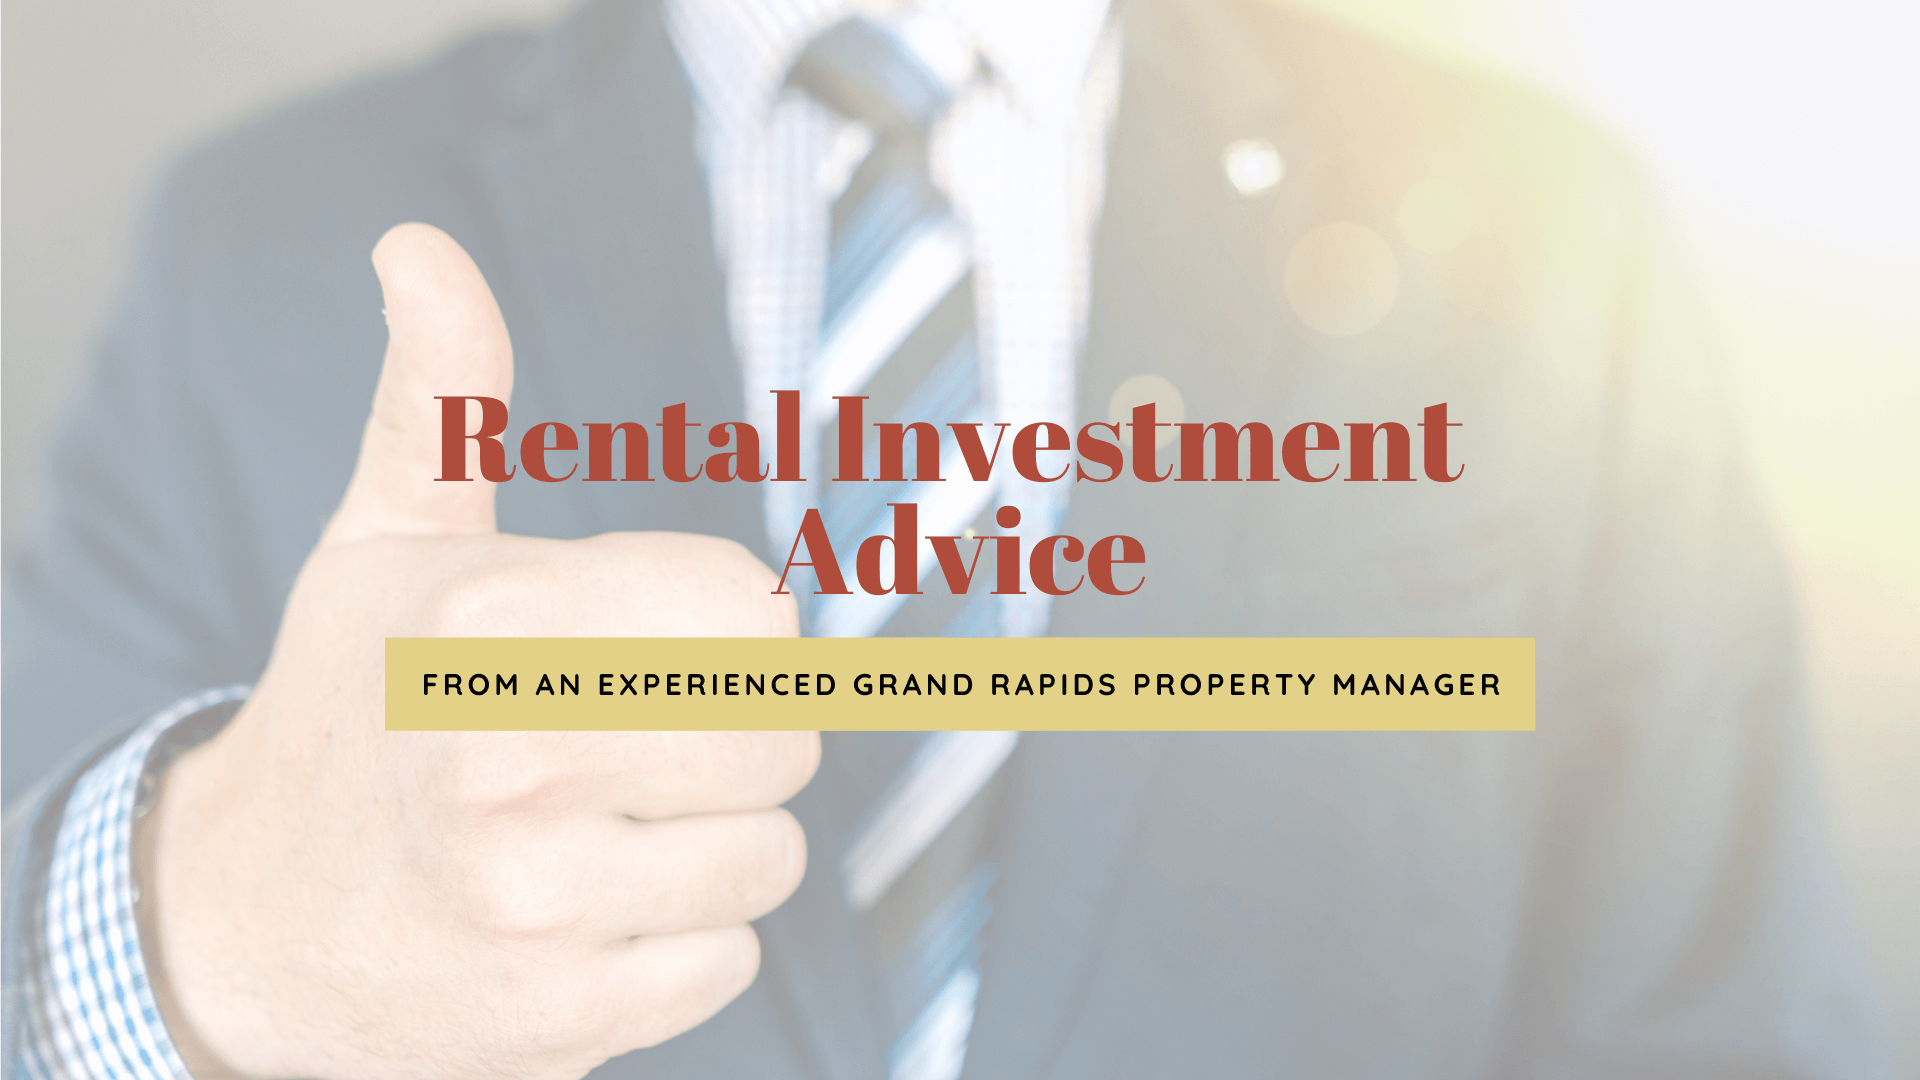 Rental Investment Advice Should Come From an Experienced Grand Rapids Property Manager